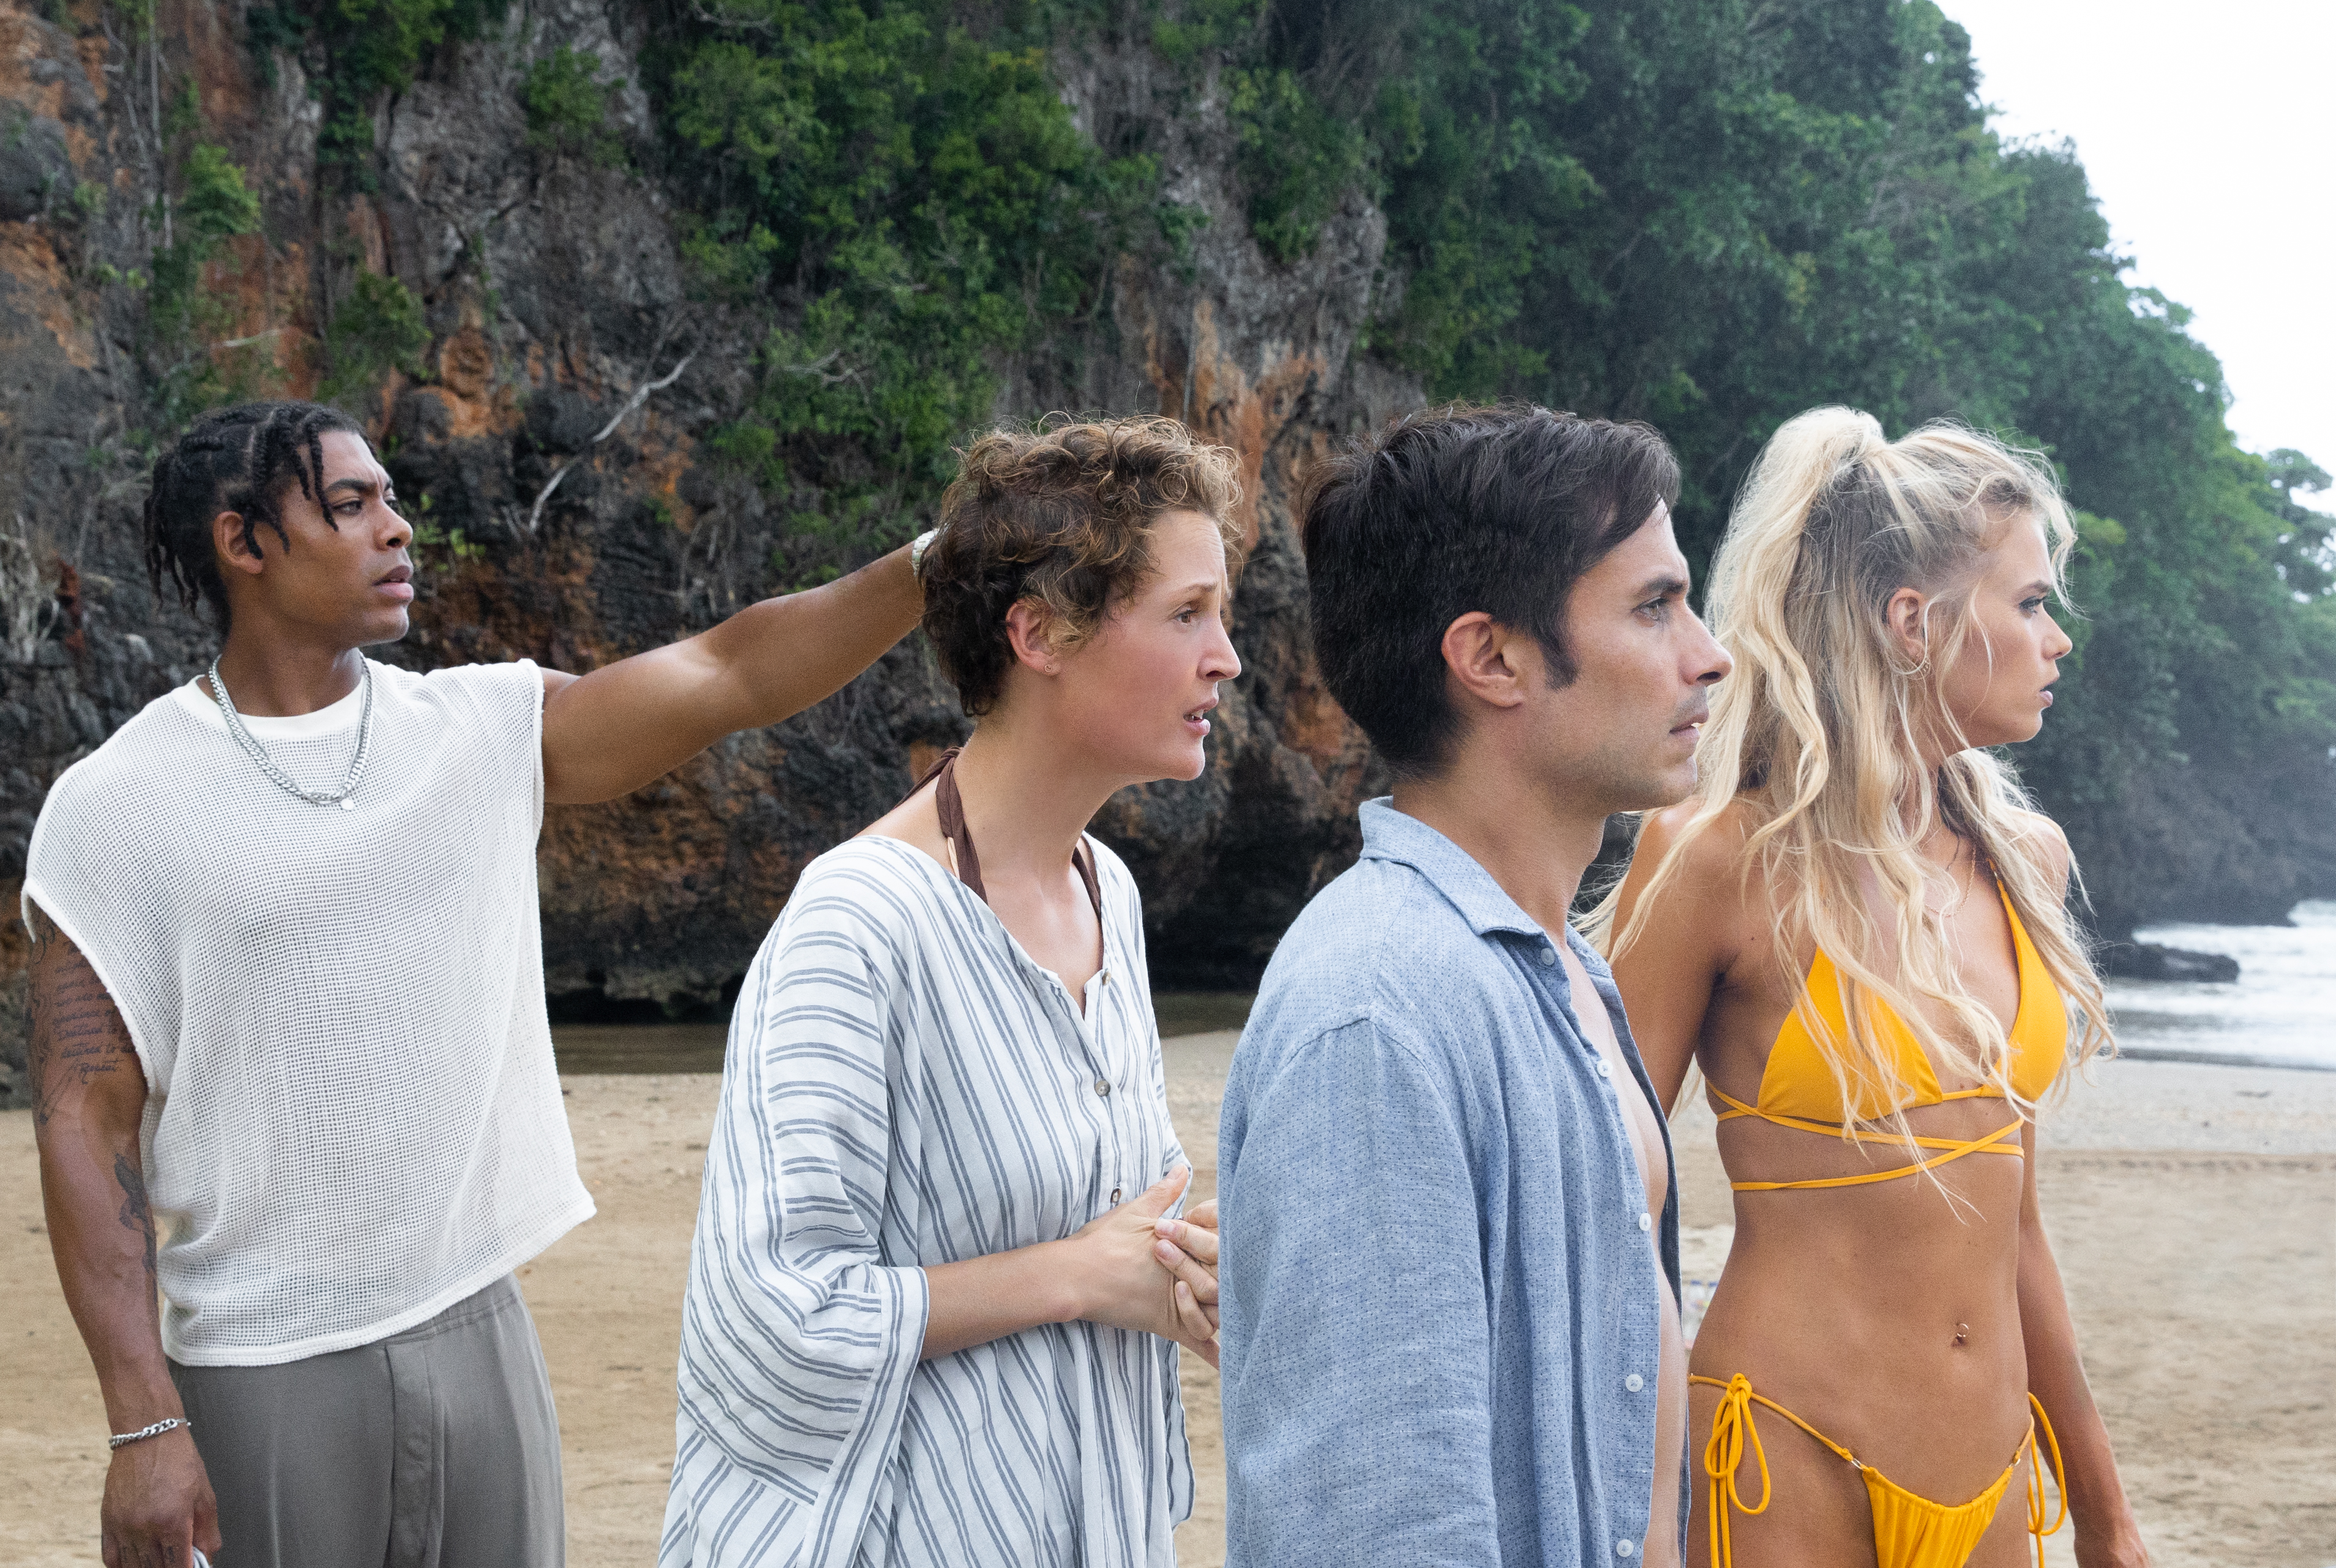 A group of vacationers stranded on the beach in M. Night Shyamalan's Old.